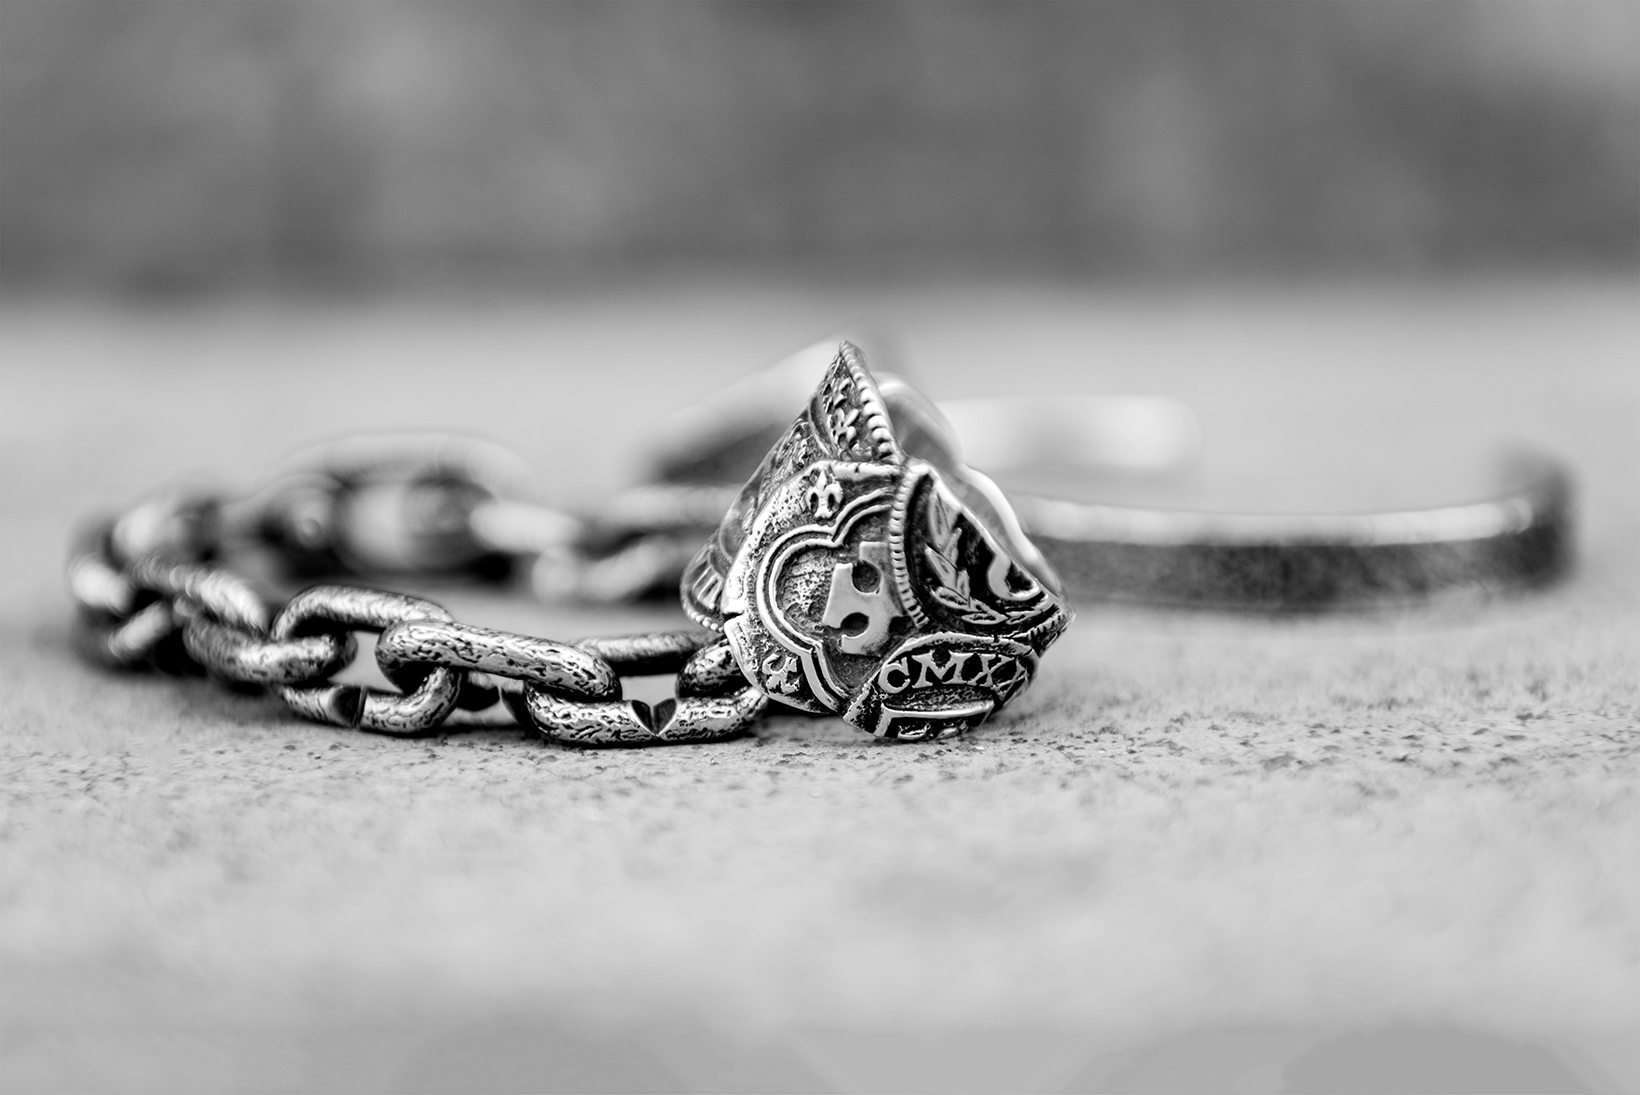 aae91e29c48 NYC-based luxury jewelry brand David Yurman unveils its Shipwreck  Collection for Fall Winter 2017. Taking inspiration from British and  Spanish merchant ...